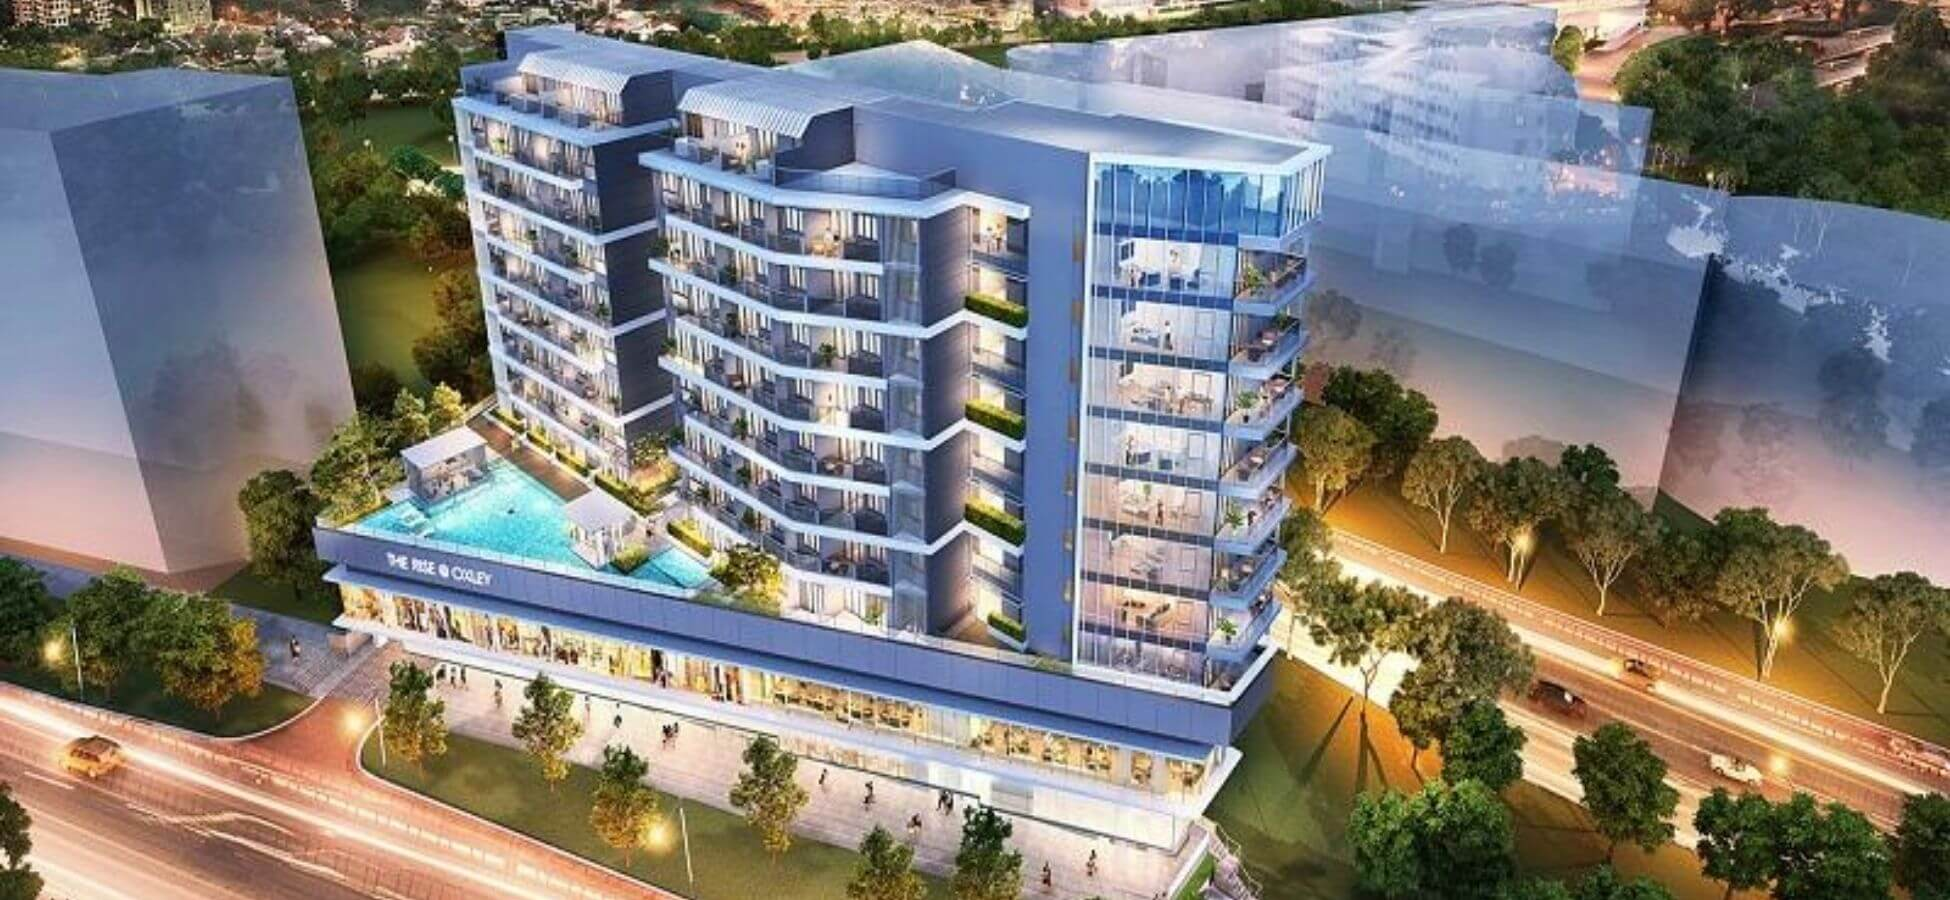 <span>The Rise @ Oxley Residences</span> is a Freehold Development<br>at Prime D9